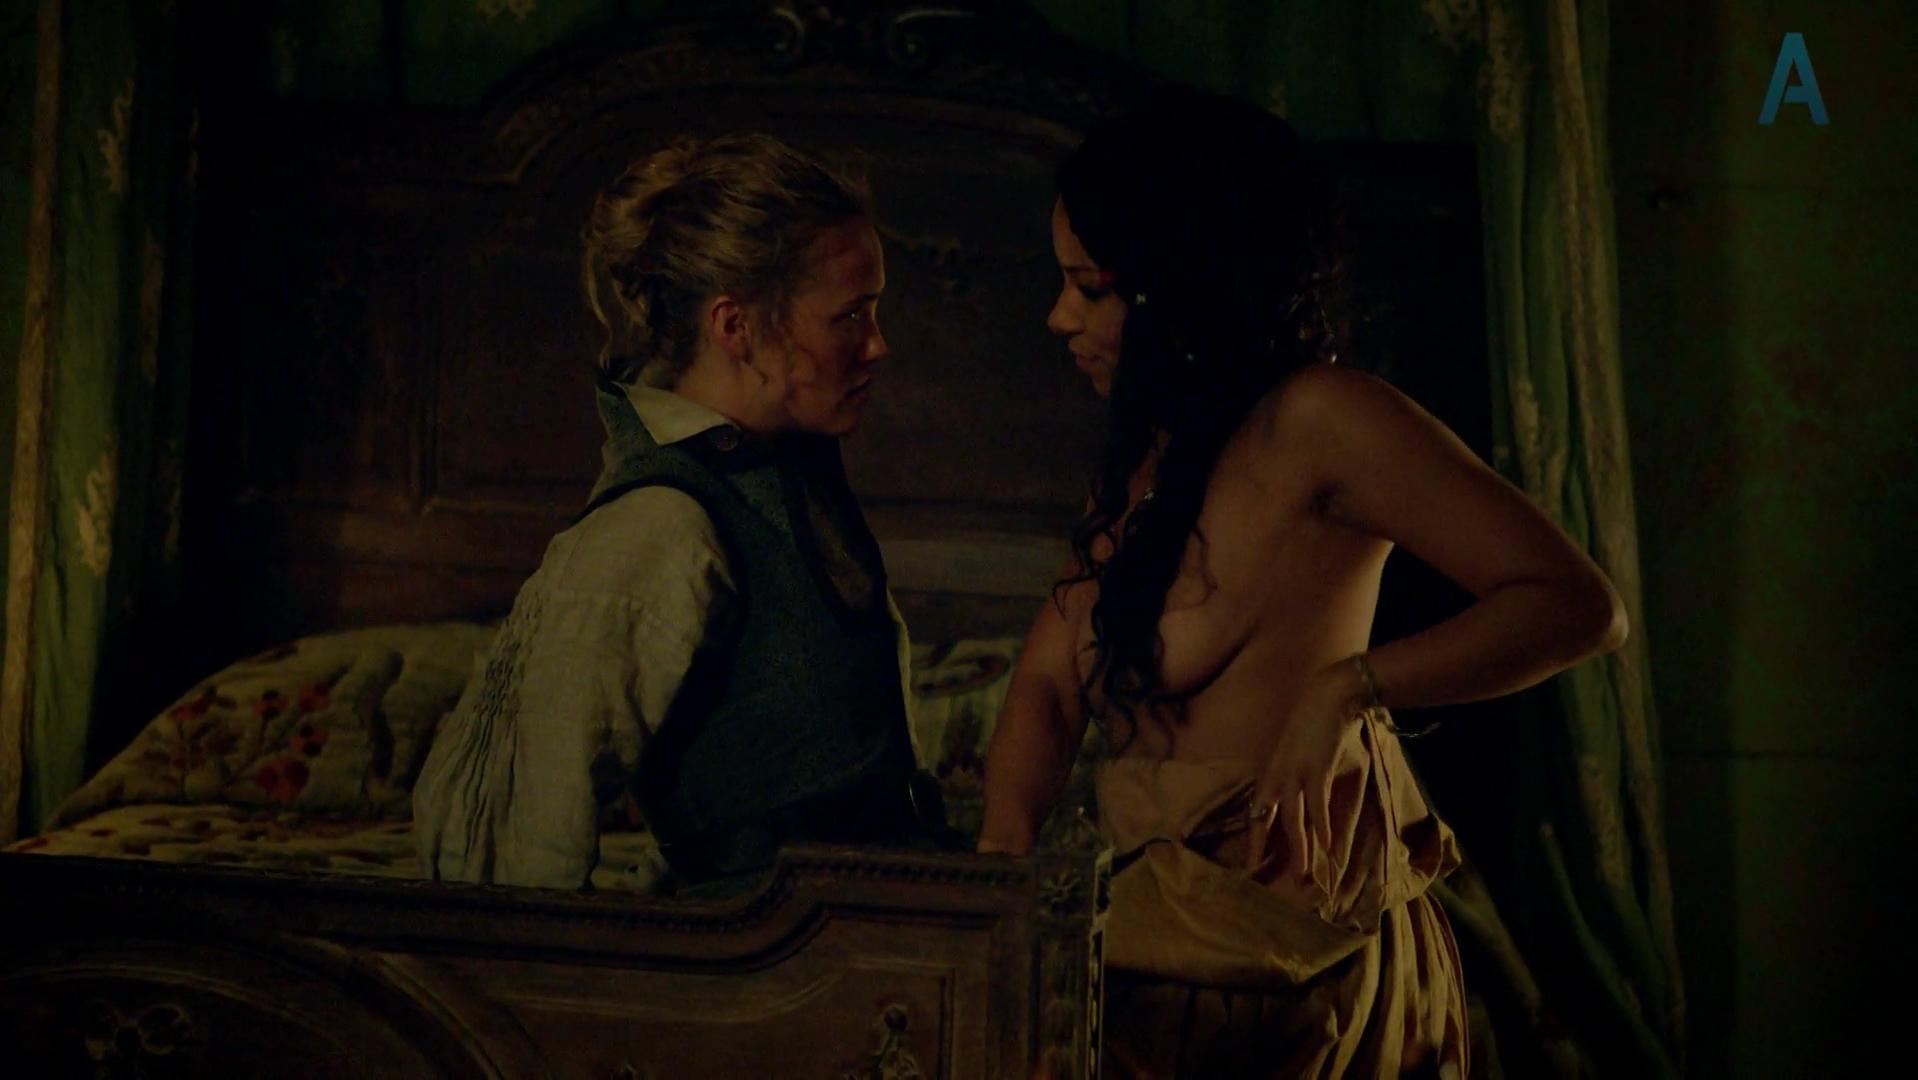 Jessica Parker Kennedy nude, Hannah New sexy - Black Sails s01e01 (2014)